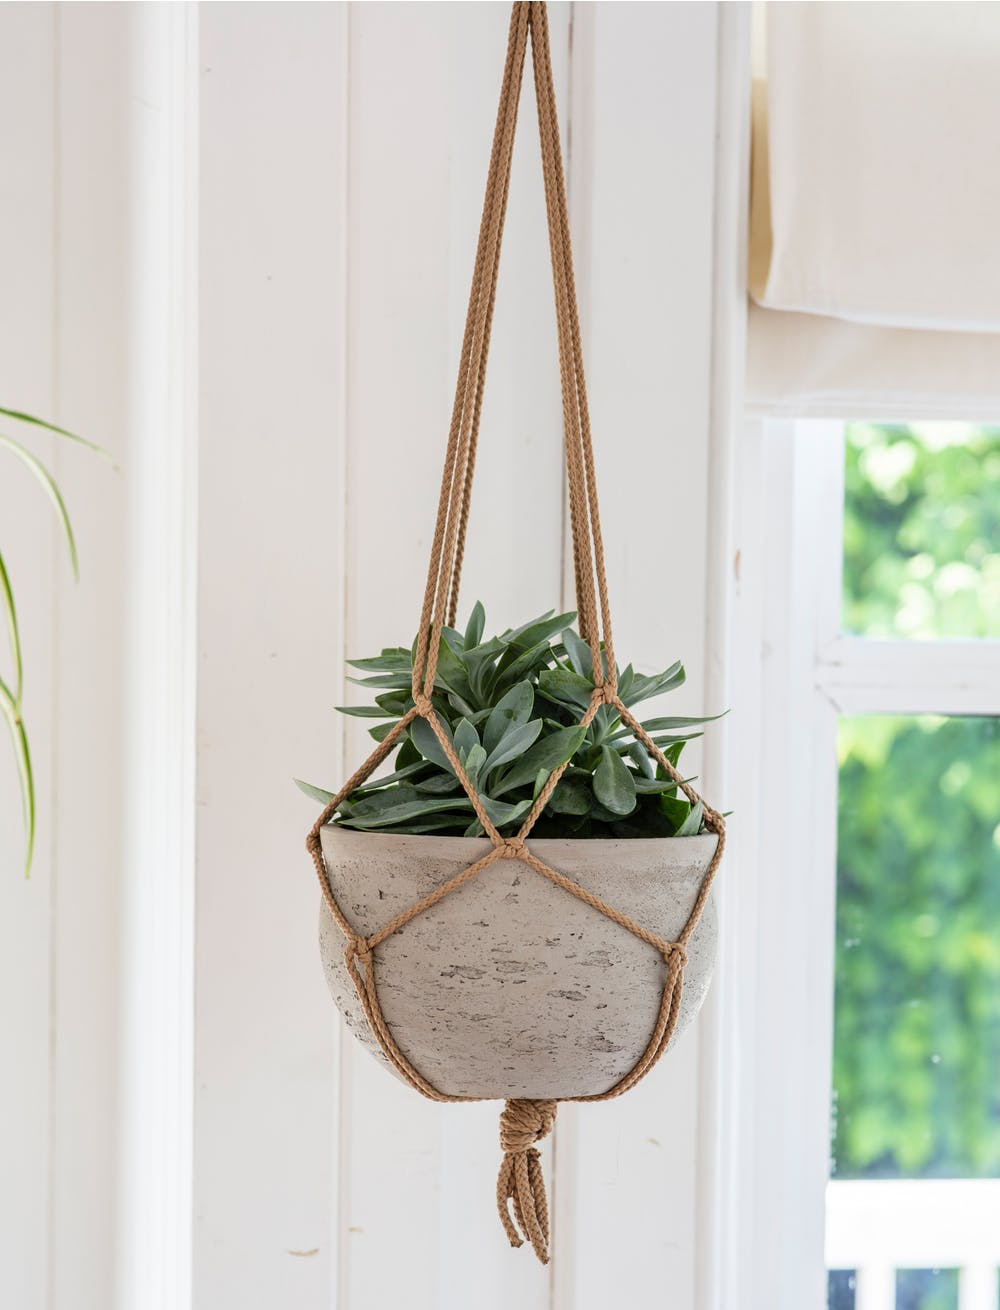 Cement Hanging Plant Pot - Stone